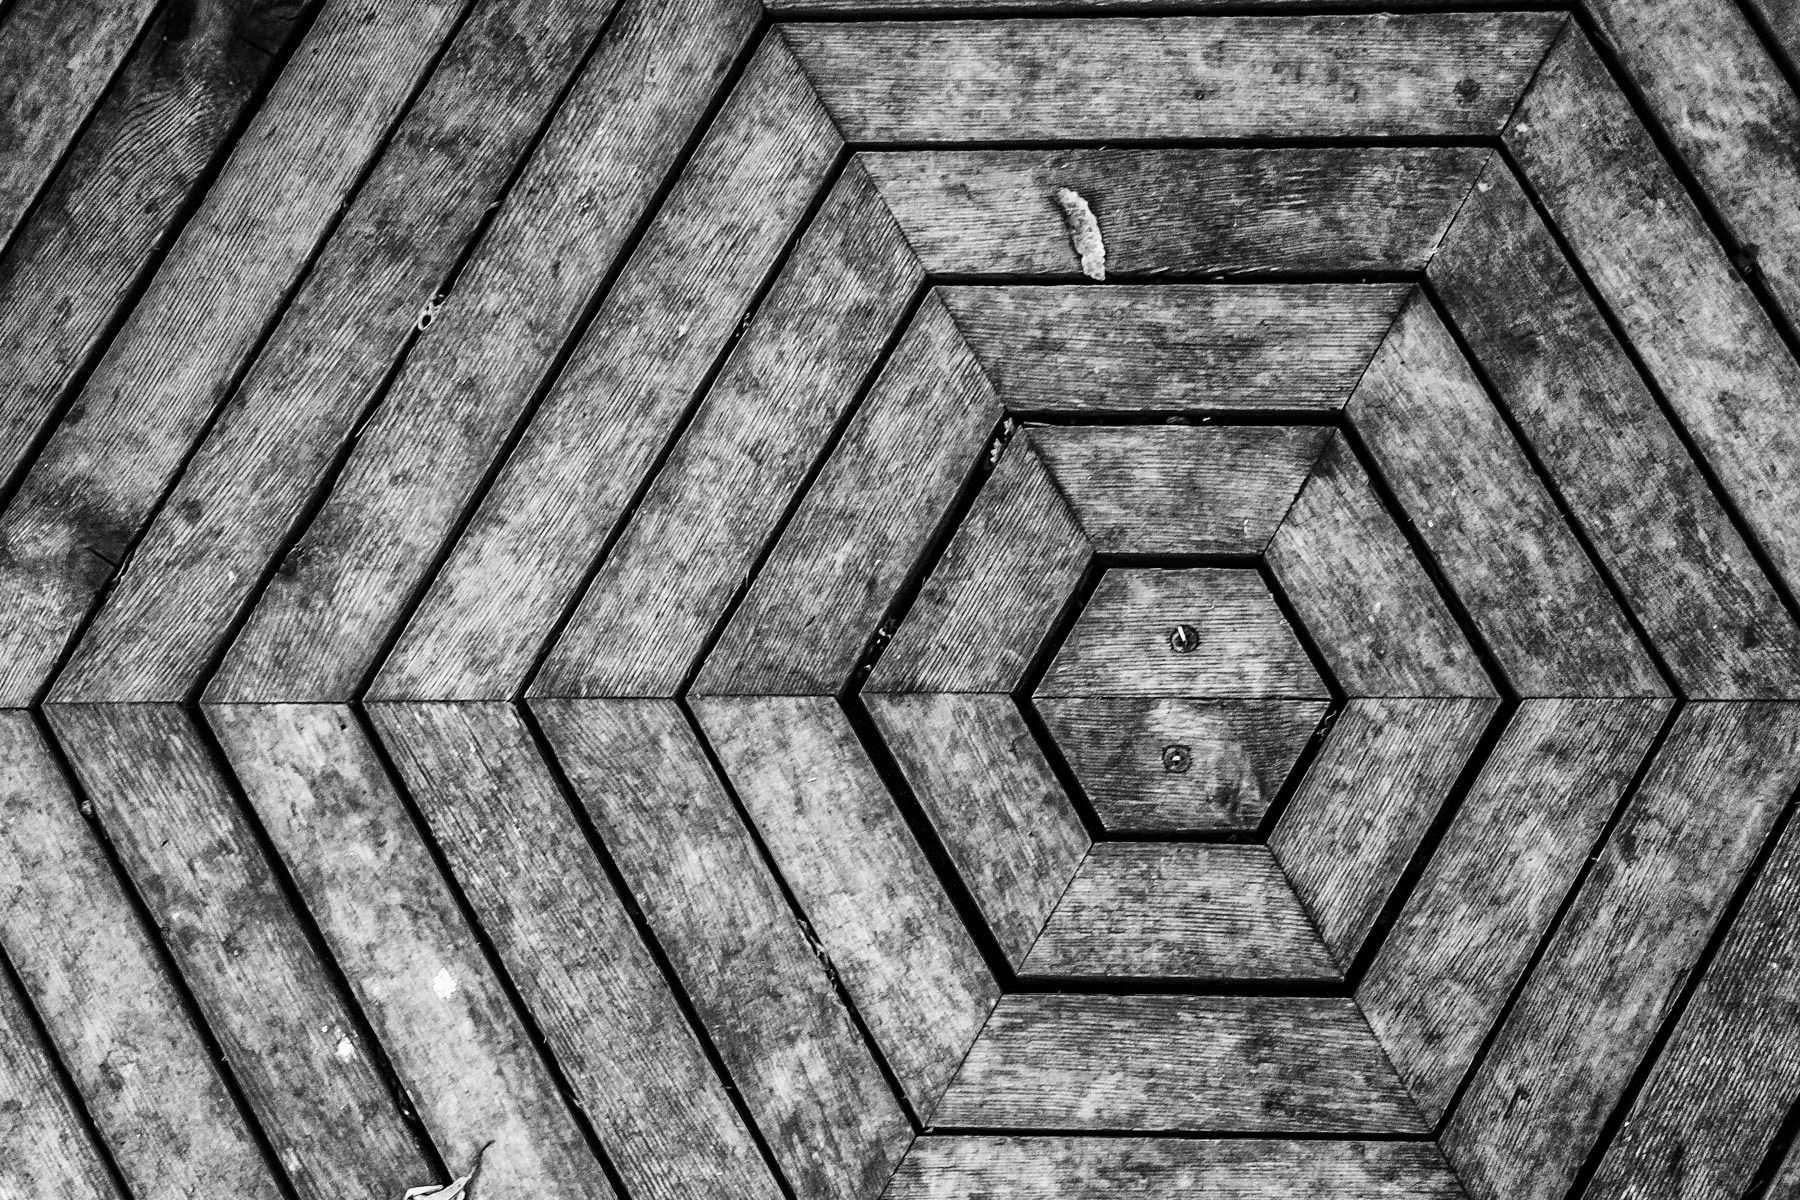 The pattern of wood making up the floor of a gazebo at the Fort Worth, Texas' Botanic Gardens vaguely reminded me of the TV show Lost's Dharma Initiative's logo.